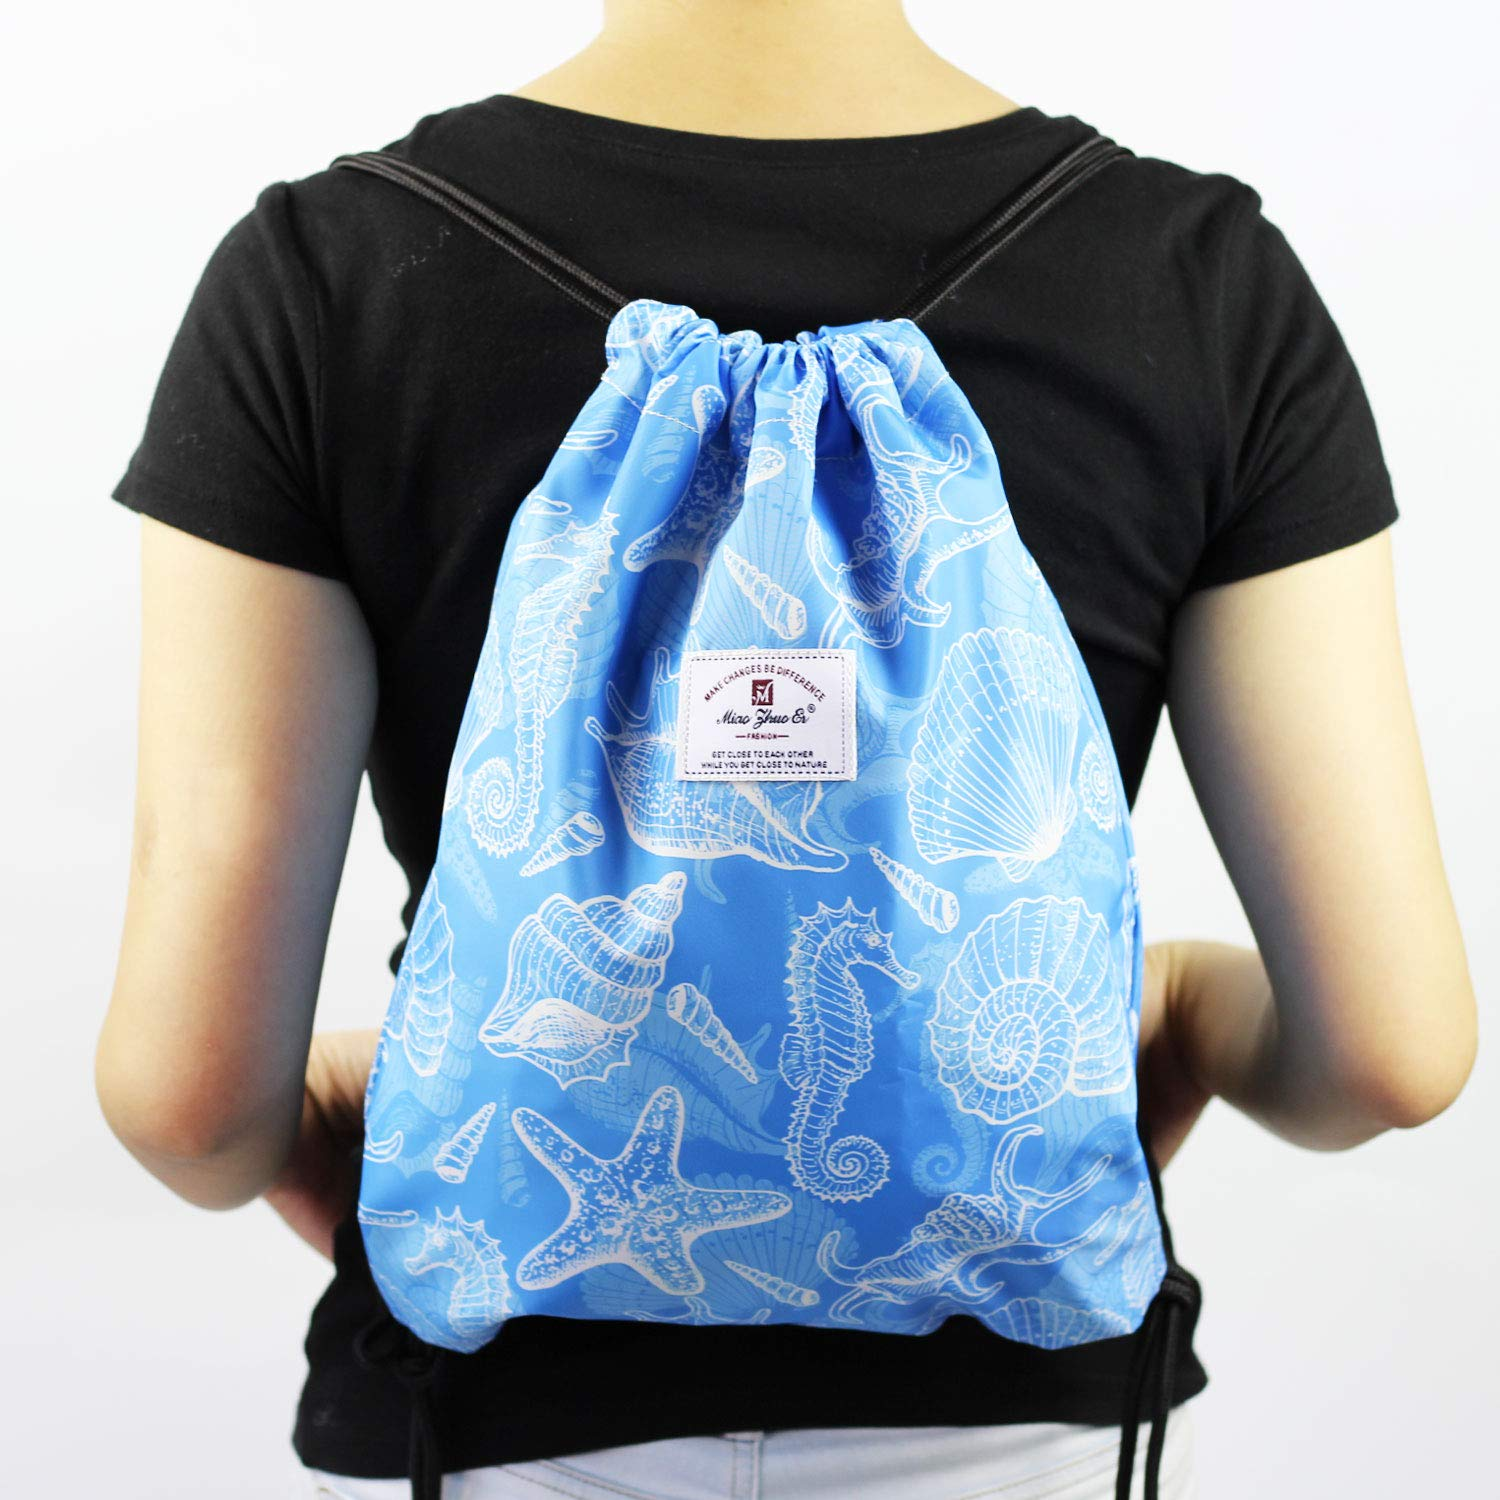 Drawstring Bag Dry Wet Floral Backpack Waterproof Lightweight Tote Pool Beach Travel Gym Bags